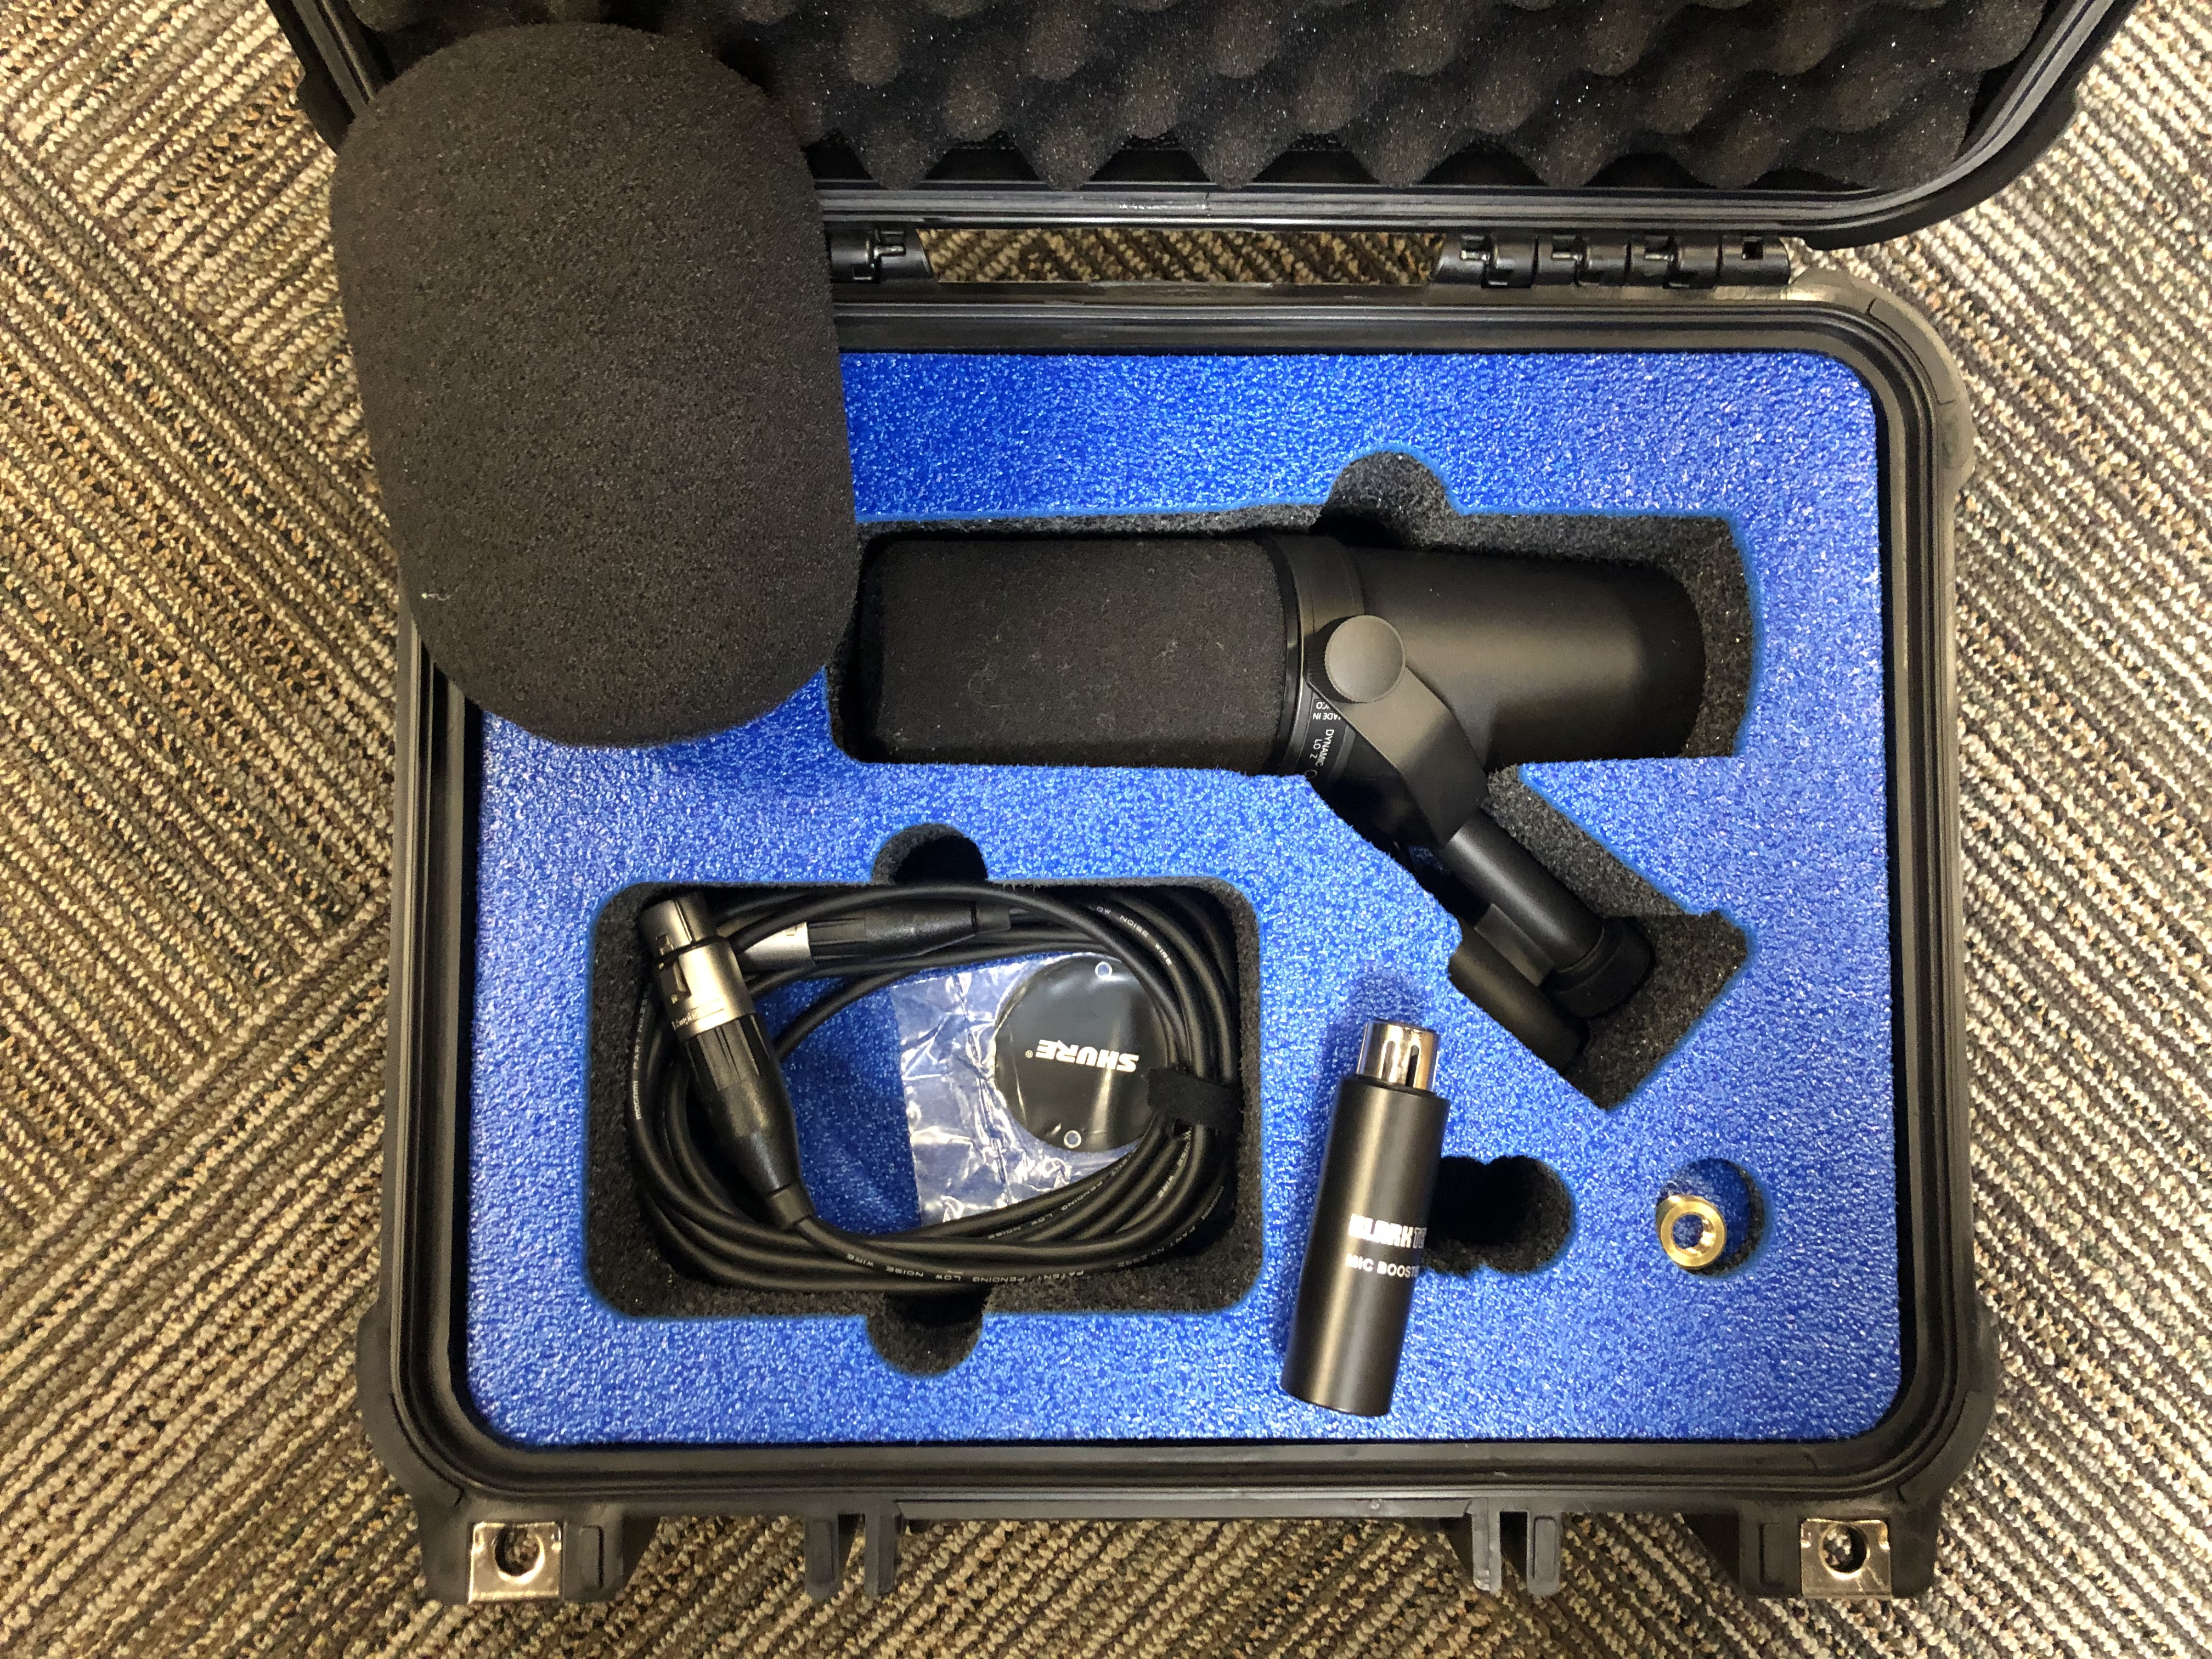 Shure SM7B in a V200 Vault by Pelican User Designed10